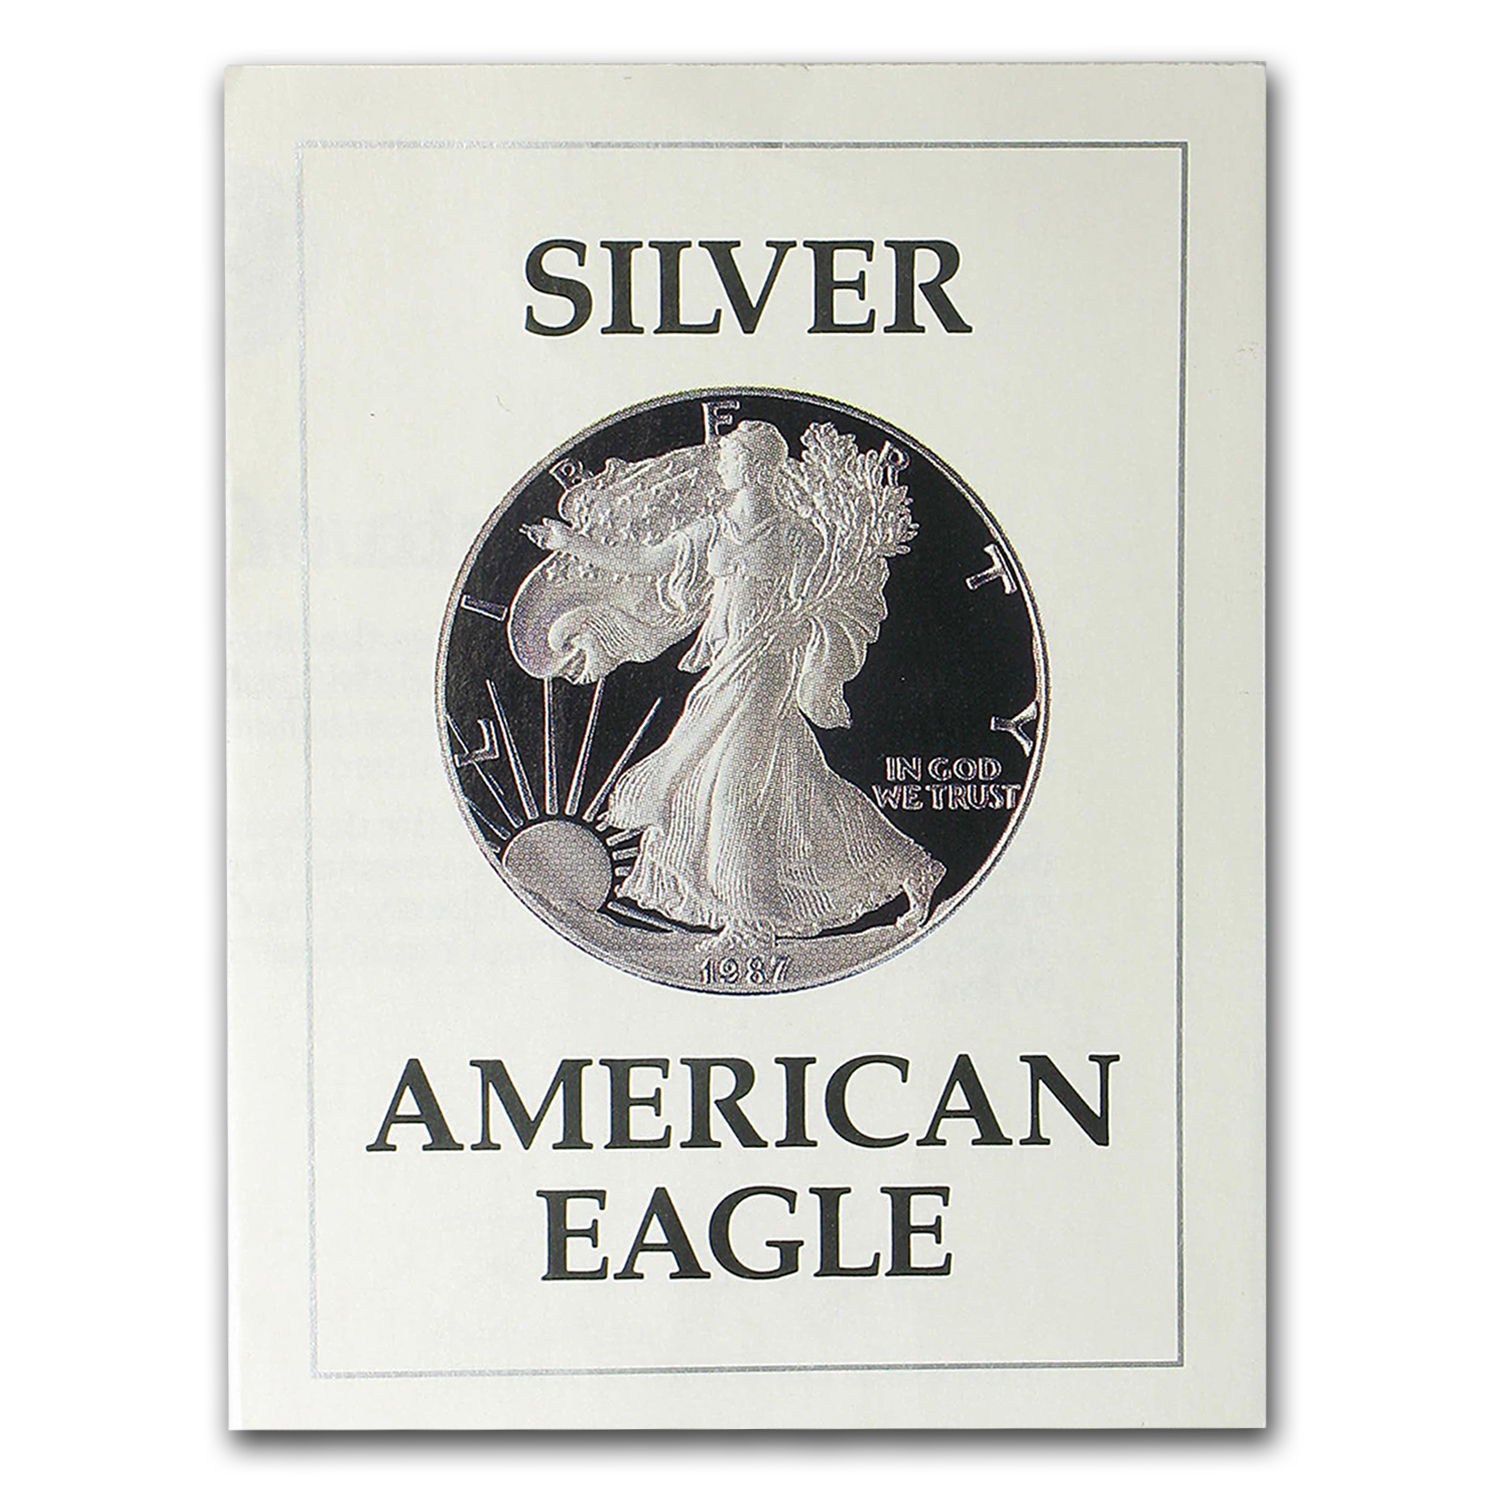 COA - 1987 US Mint 1 oz Silver American Eagle (Proof)